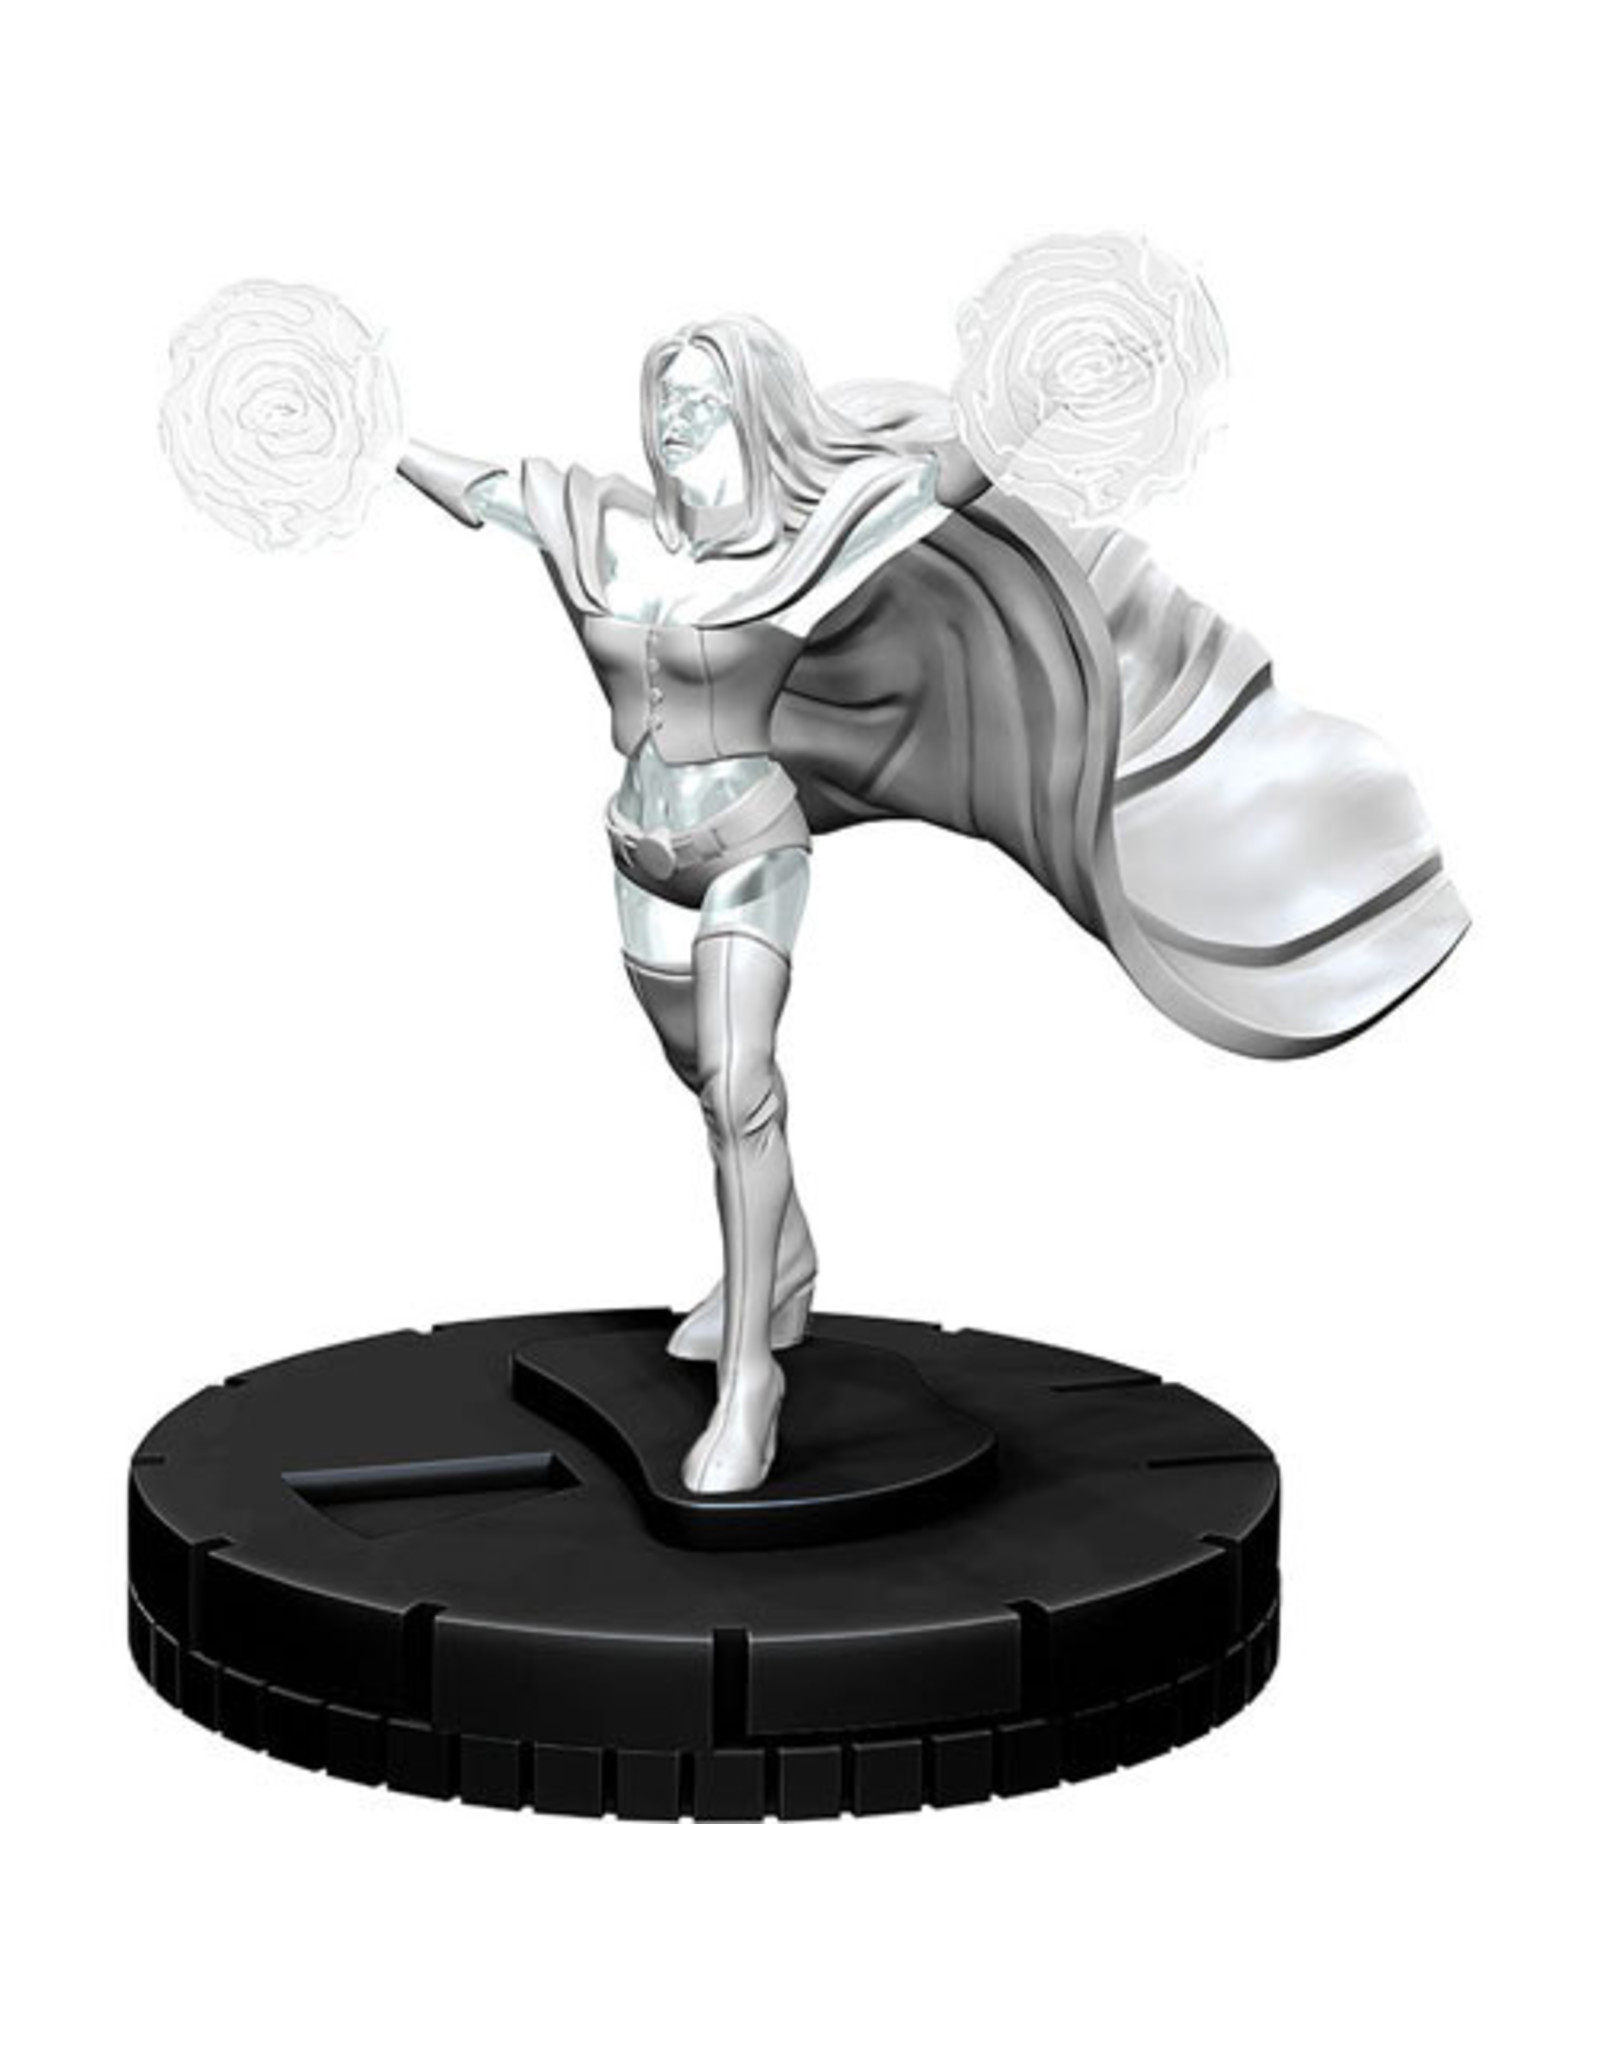 Dungeons & Dragons Deep Cuts Minis Emma Frost